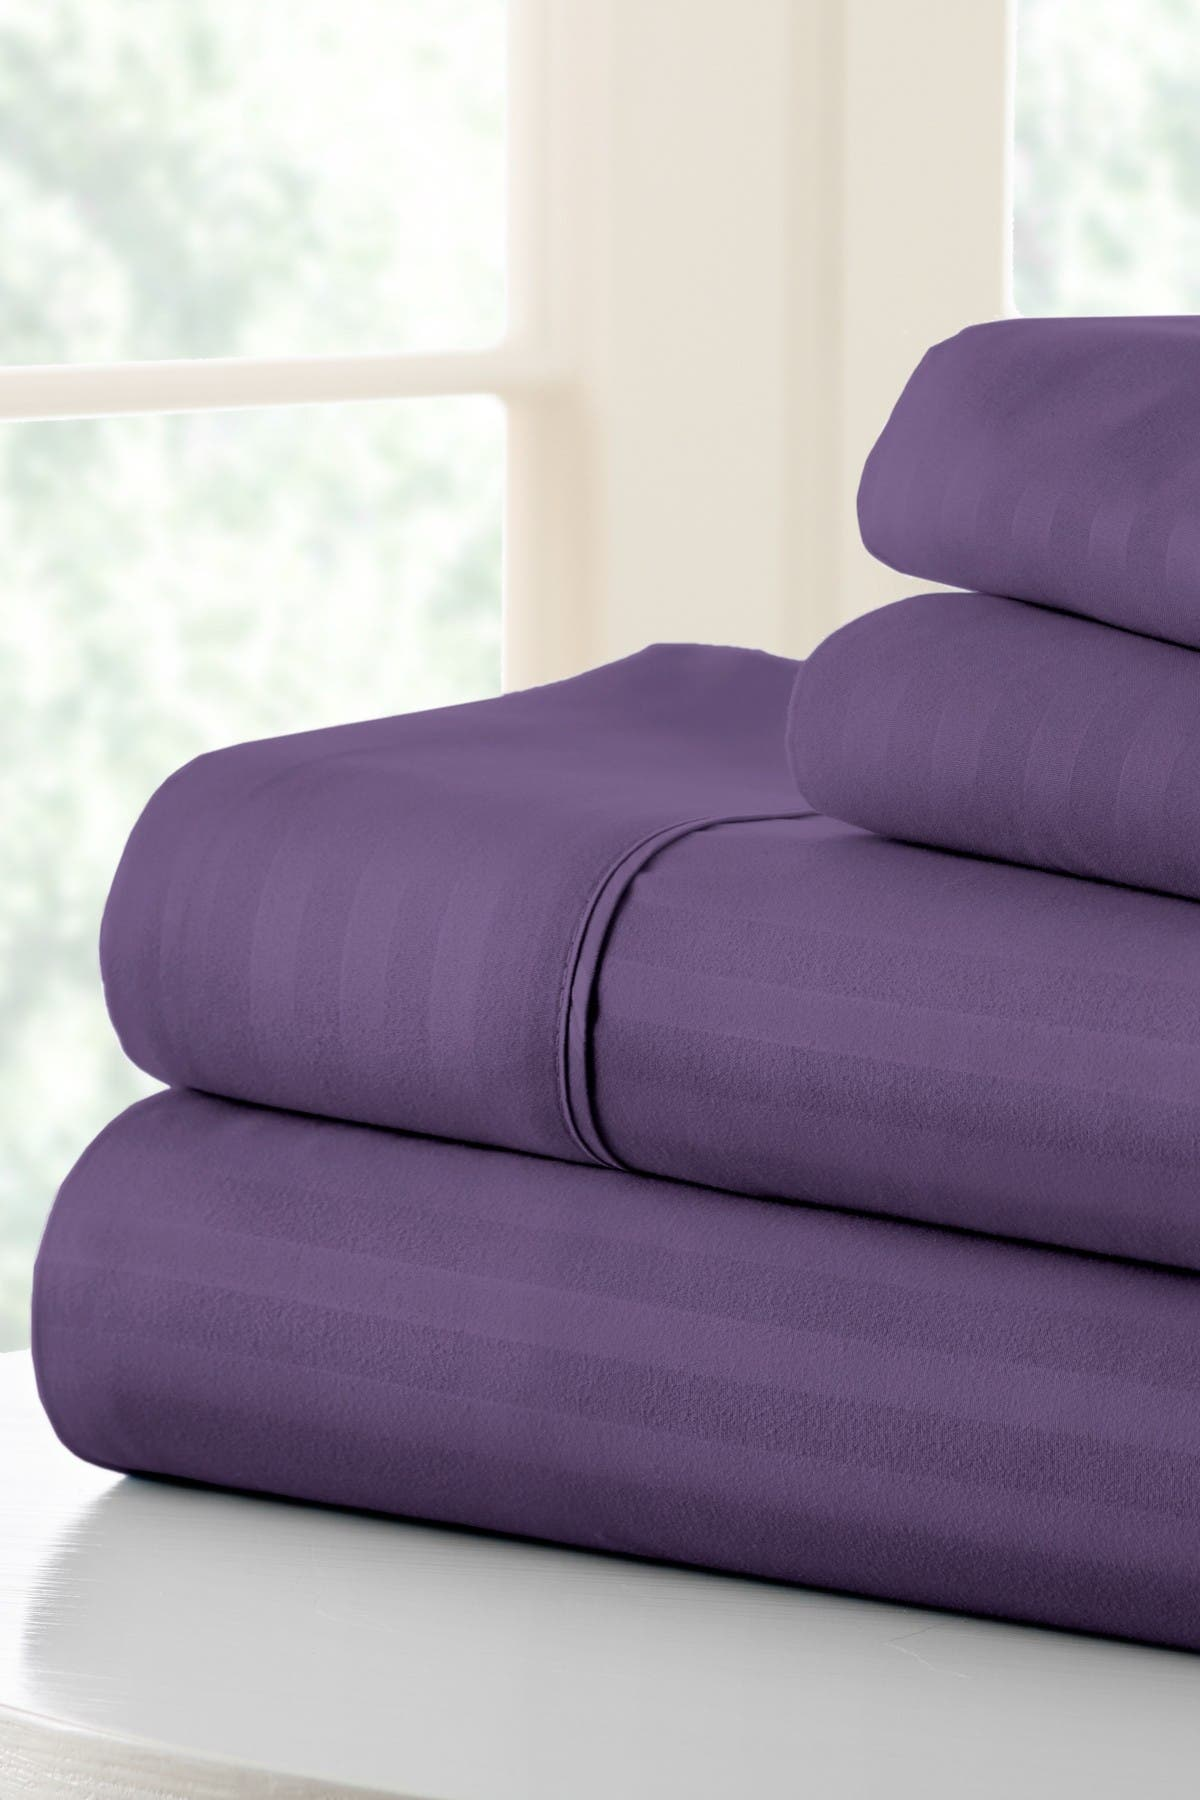 Image of IENJOY HOME Queen Hotel Collection Premium Ultra Soft 4-Piece Striped Bed Sheet Set -Purple